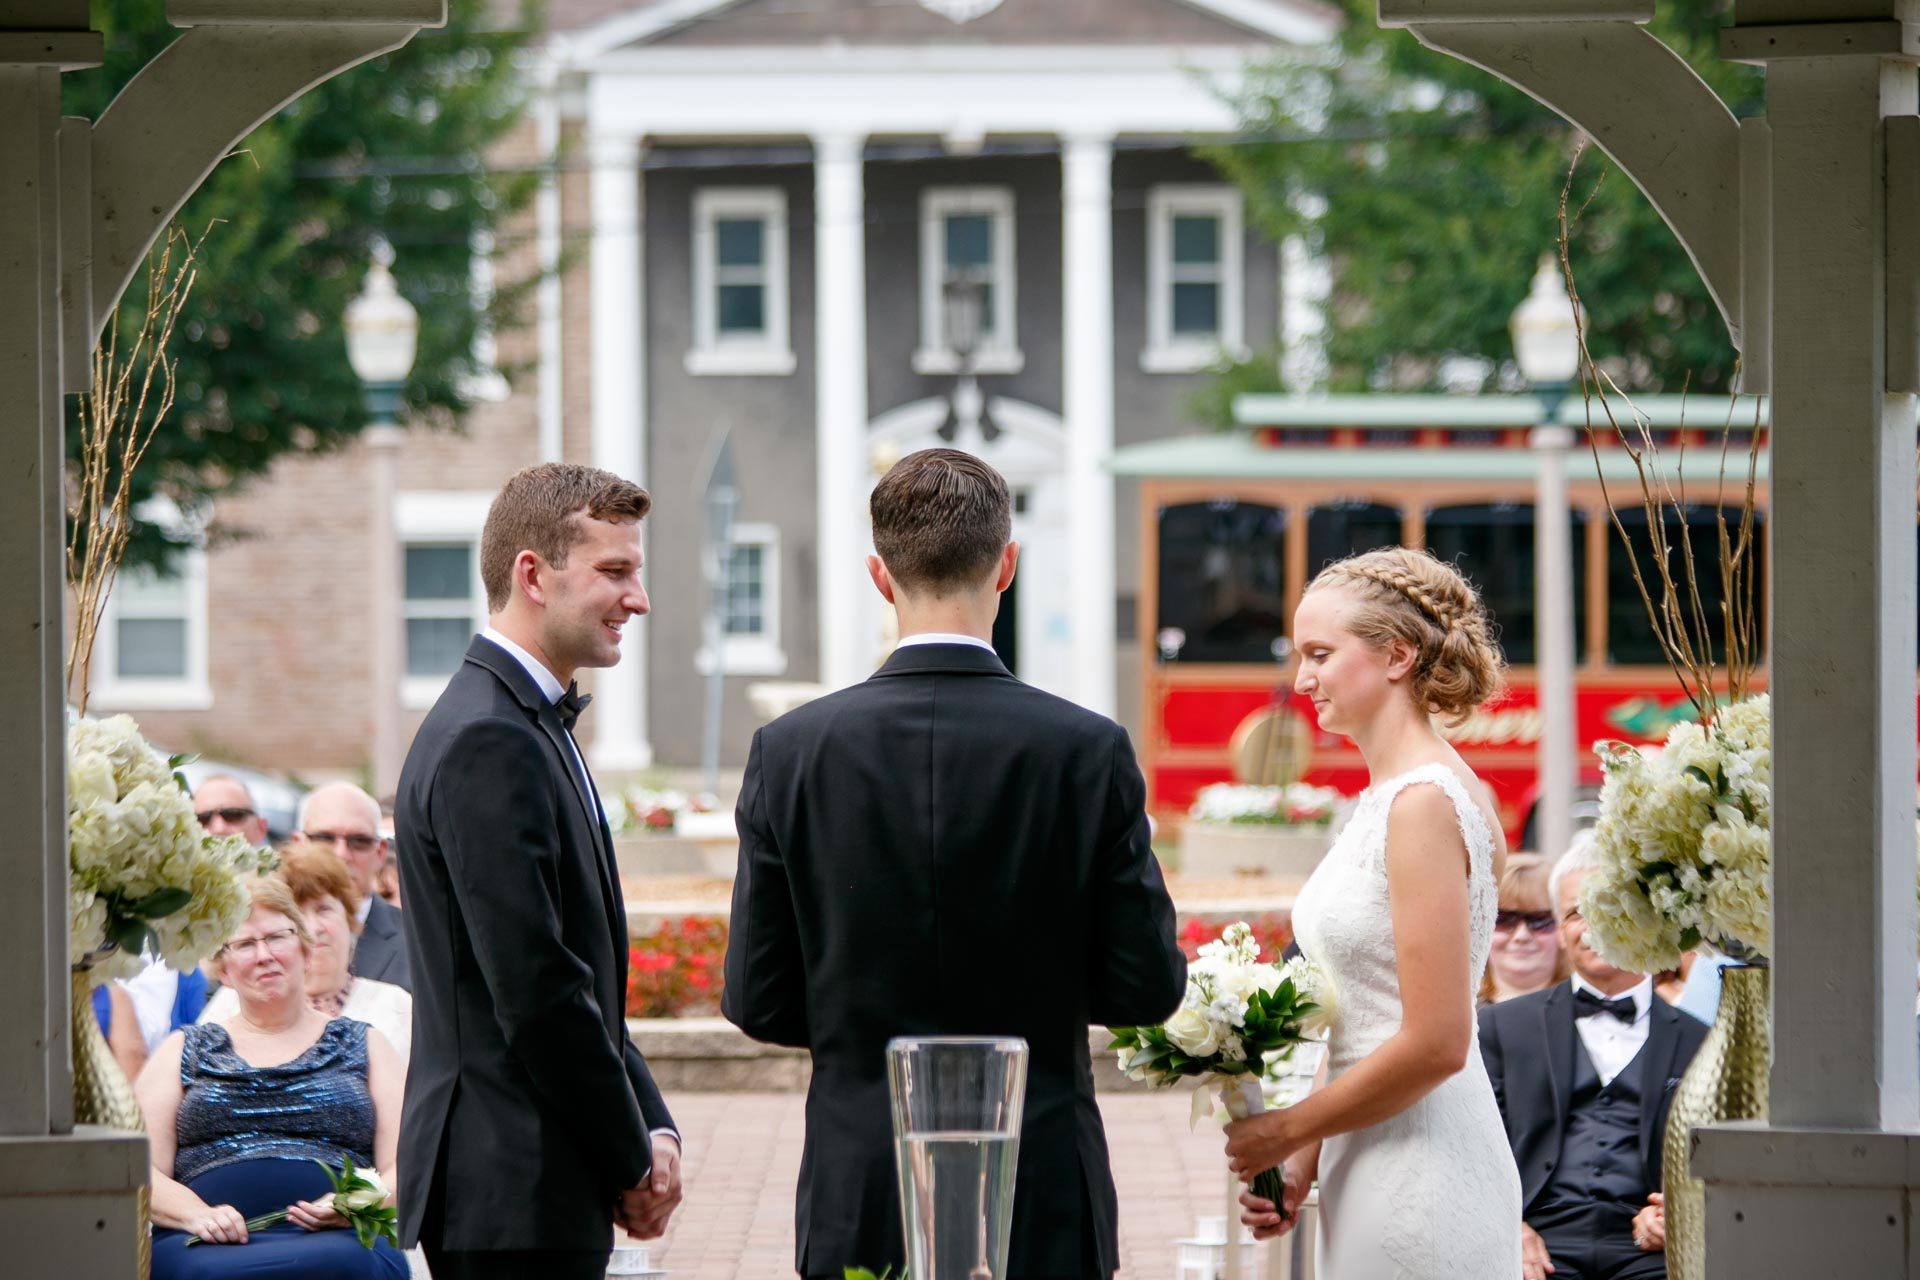 smith-park-menasha-wedding-adam-shea-photography-green-bay-appleton-neenah-photographer-15.jpg